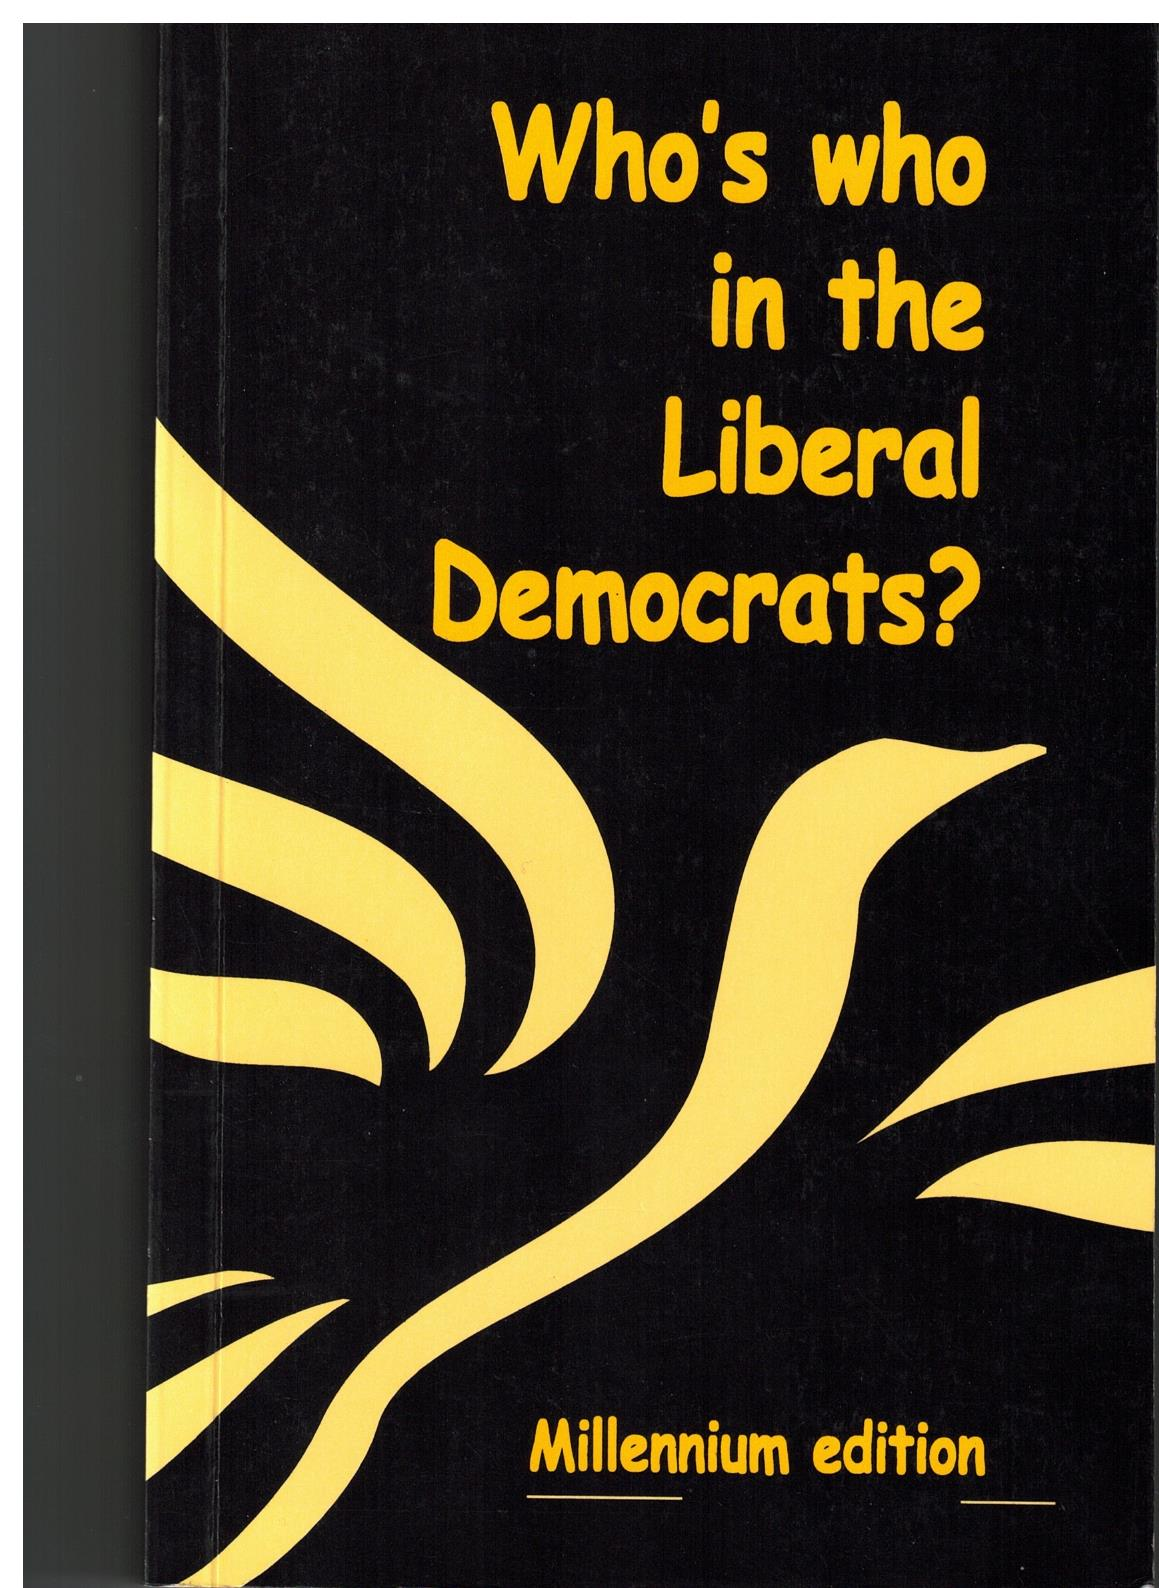 Image for Who's who in the Liberal Democrats? Millennium Edition